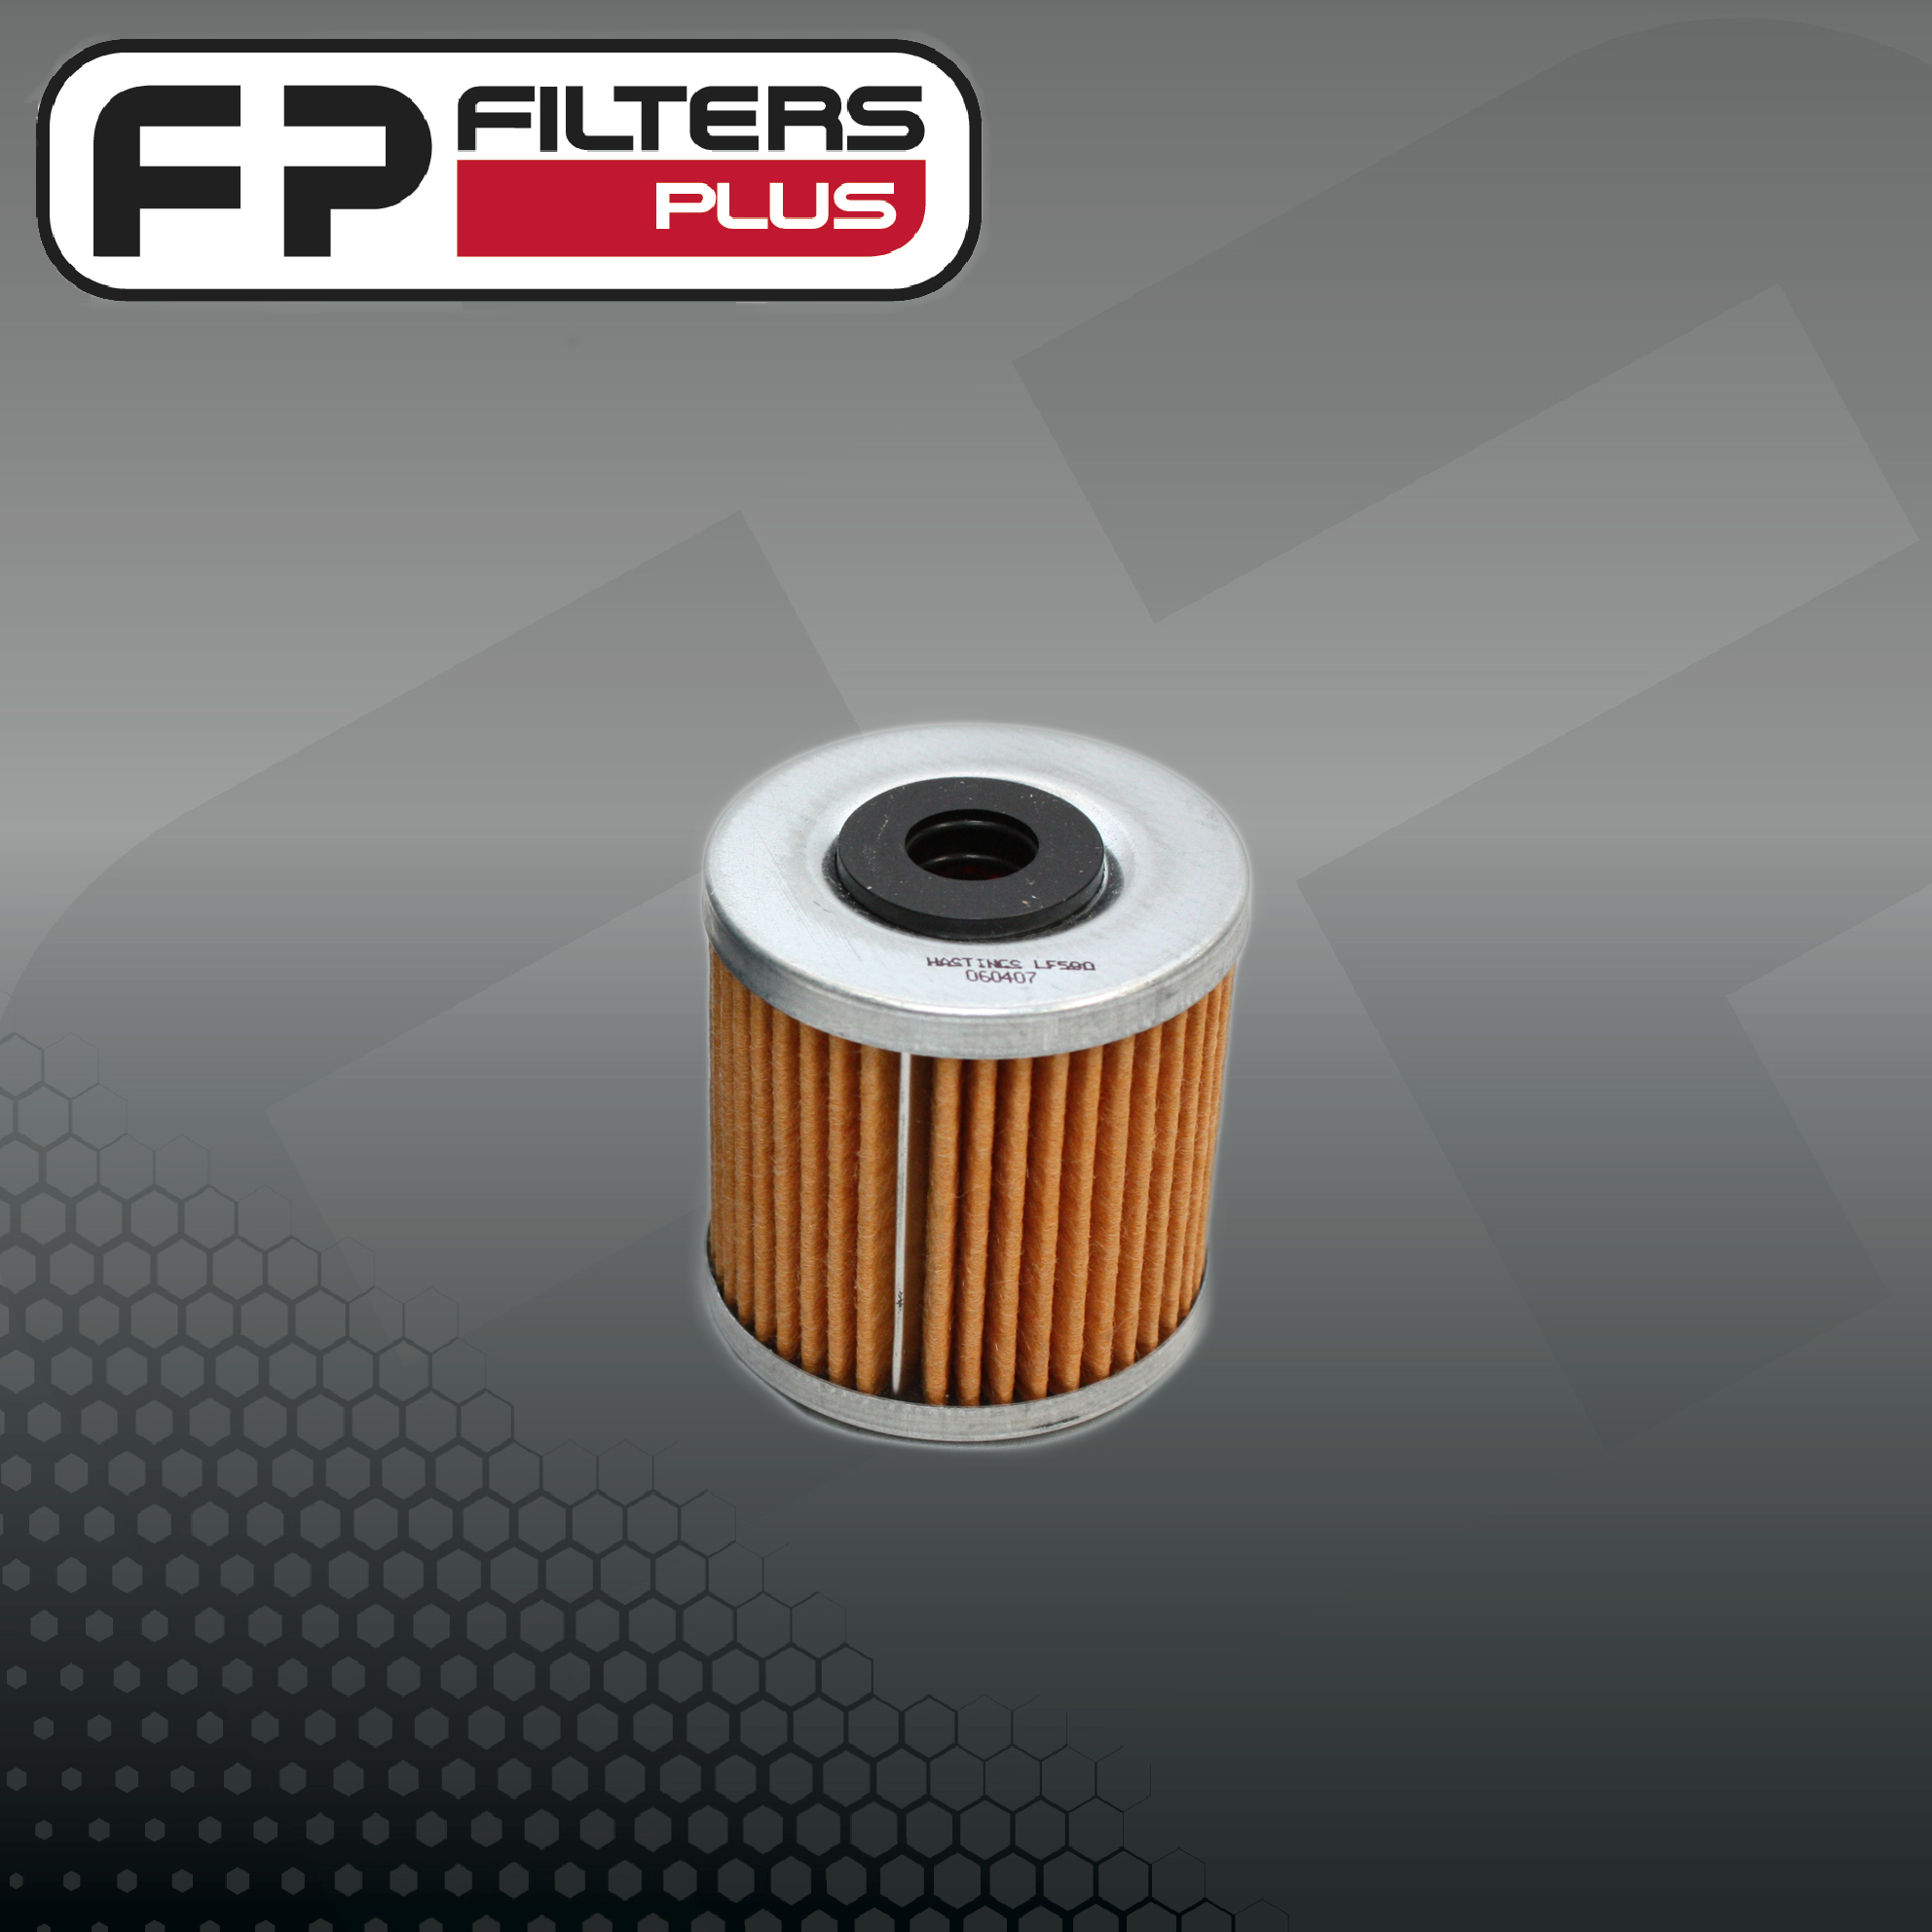 about hastings tech tips hastings filters